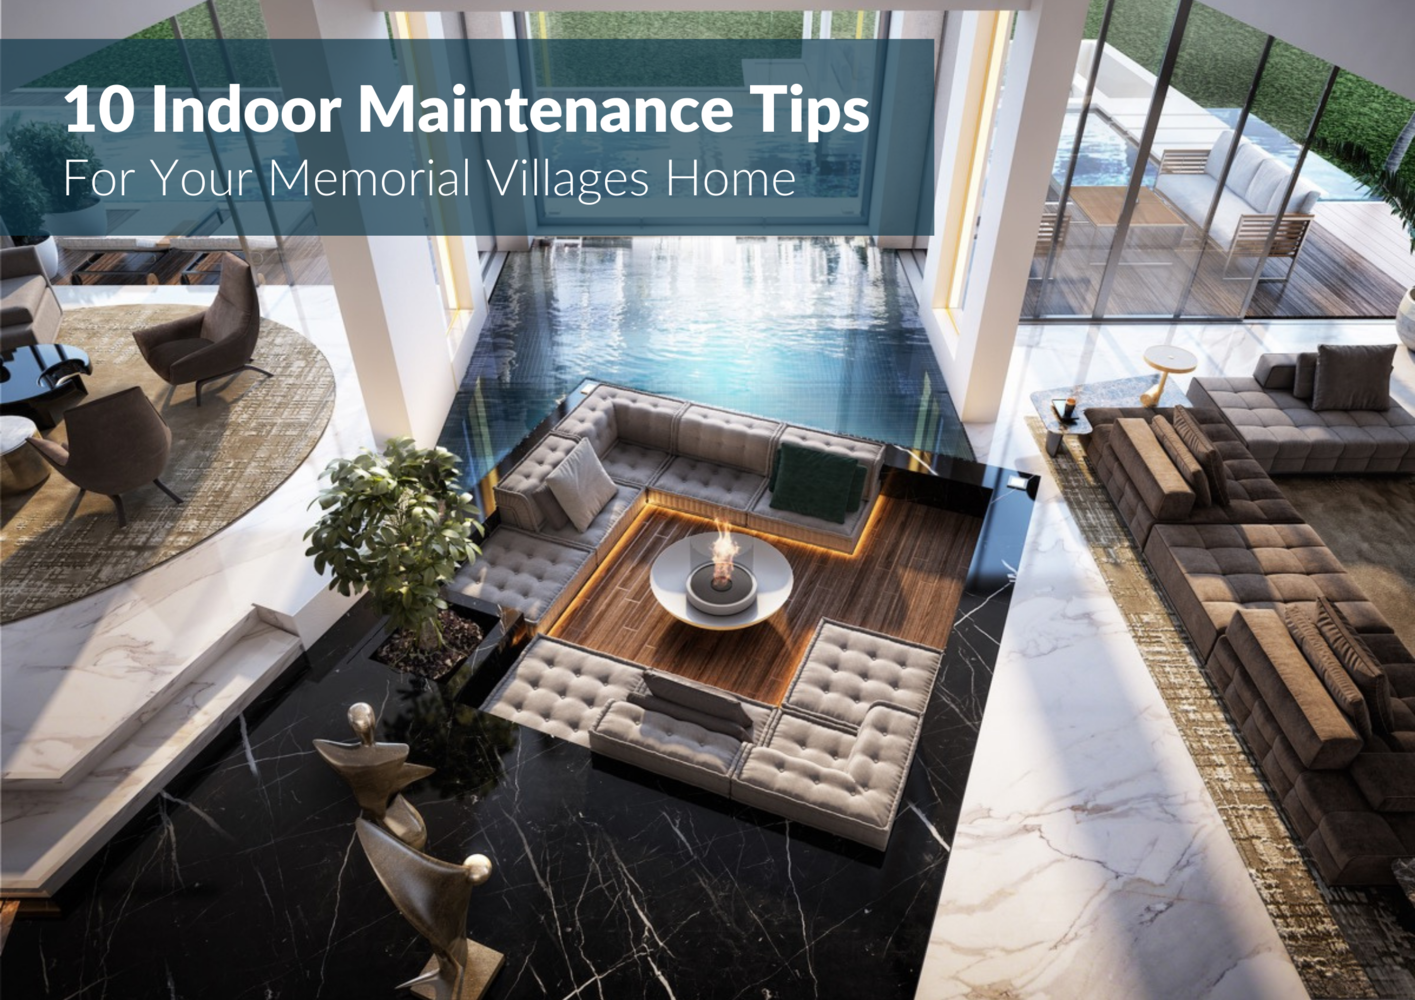 10 Handy Memorial Villages Home Interior Maintenance How-to's